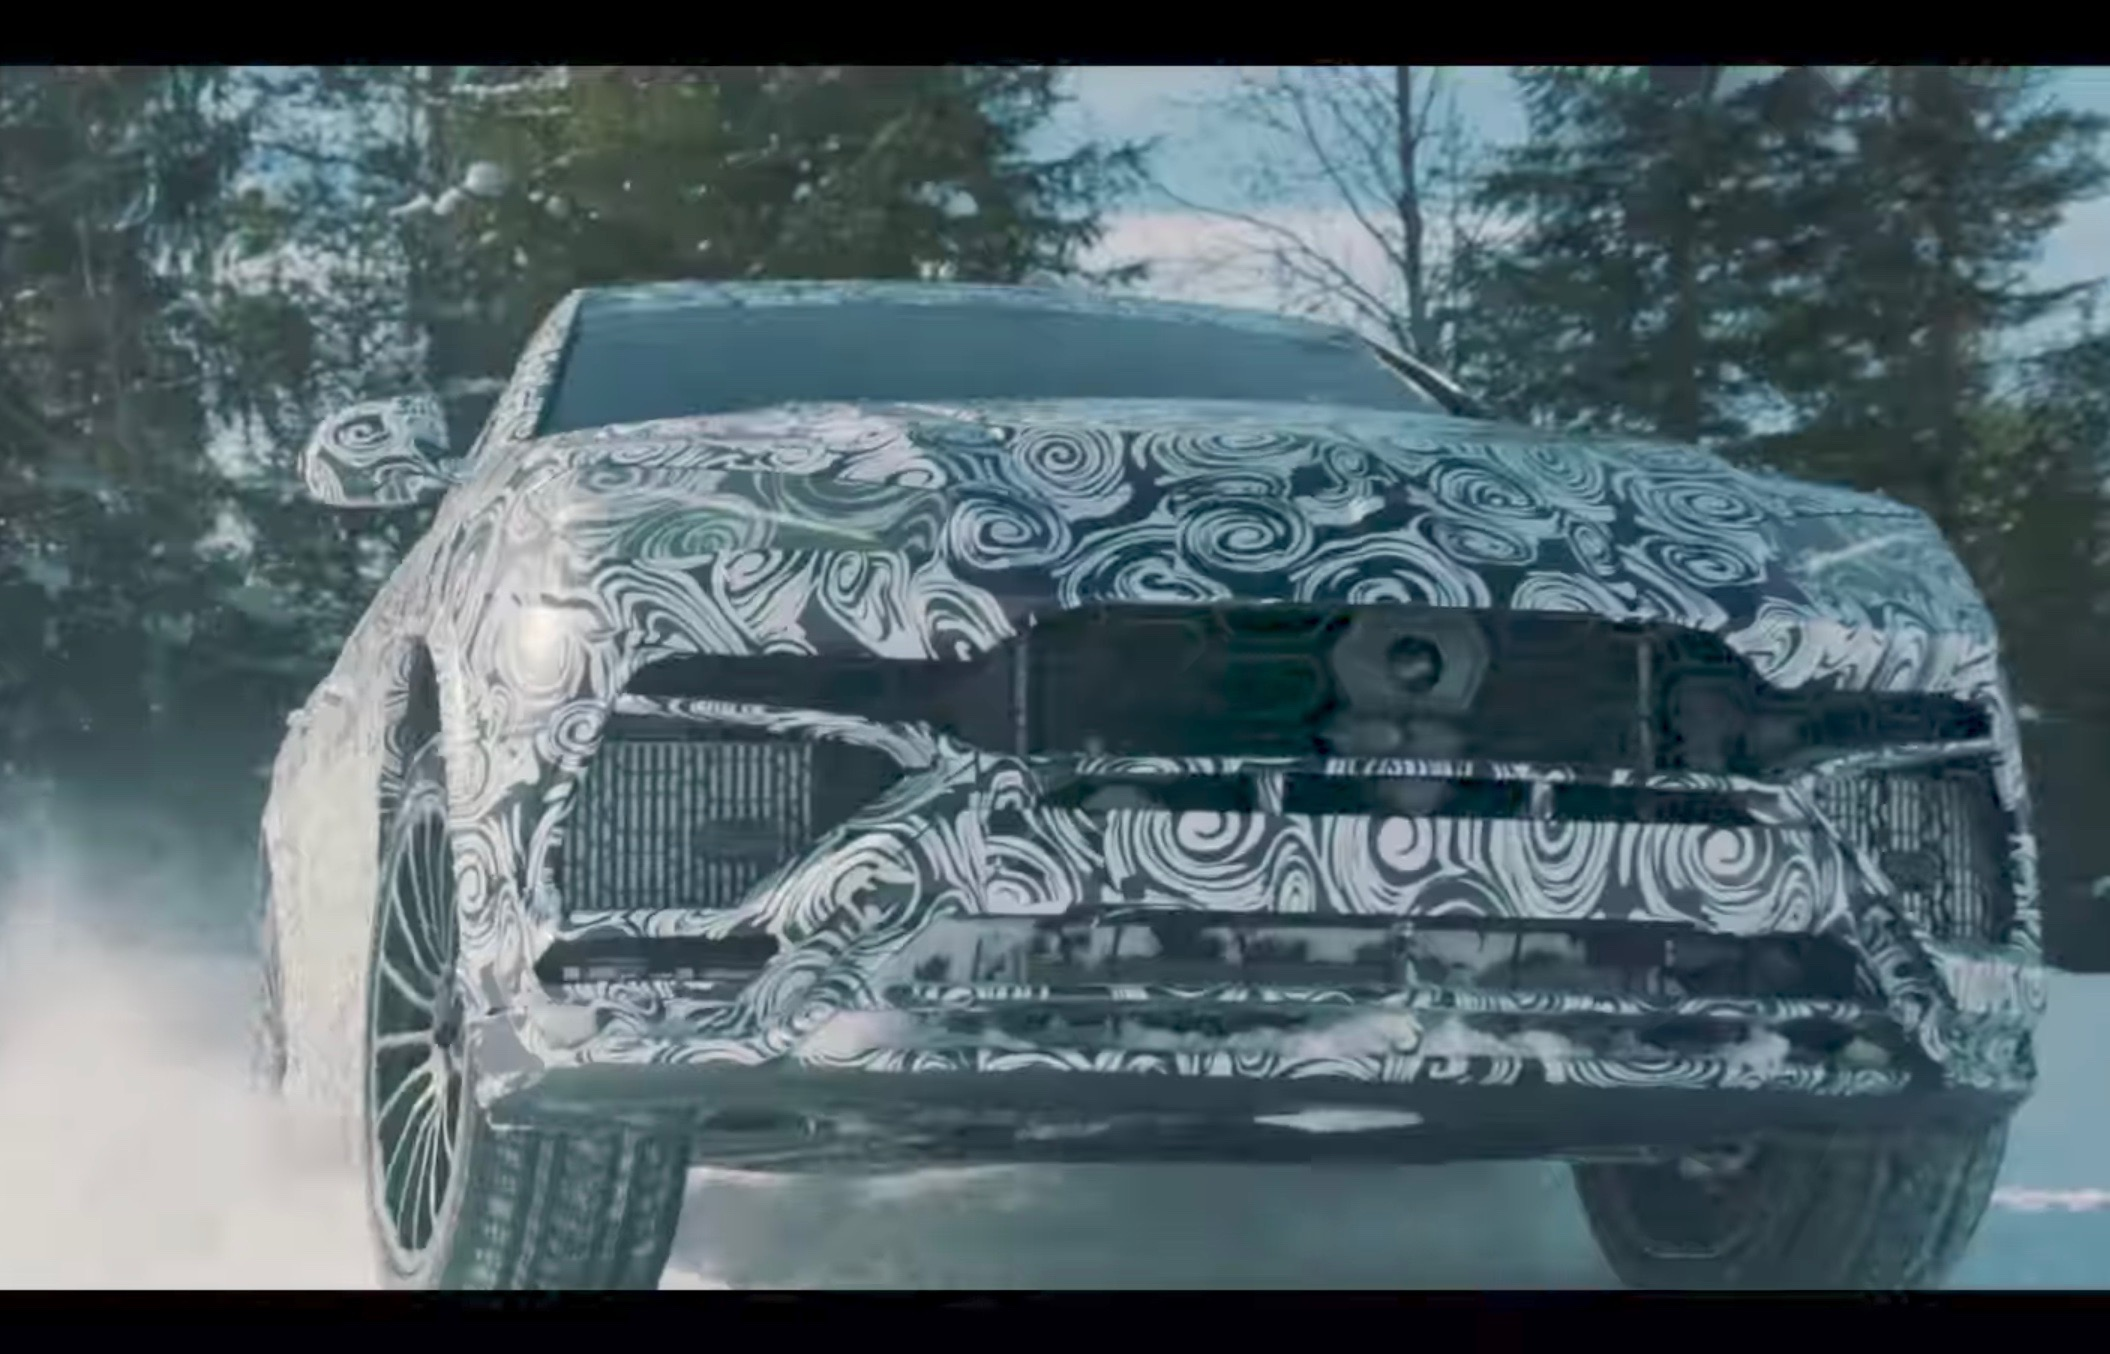 Crossover Lamborghini Urus has demonstrated his abilities on the snow